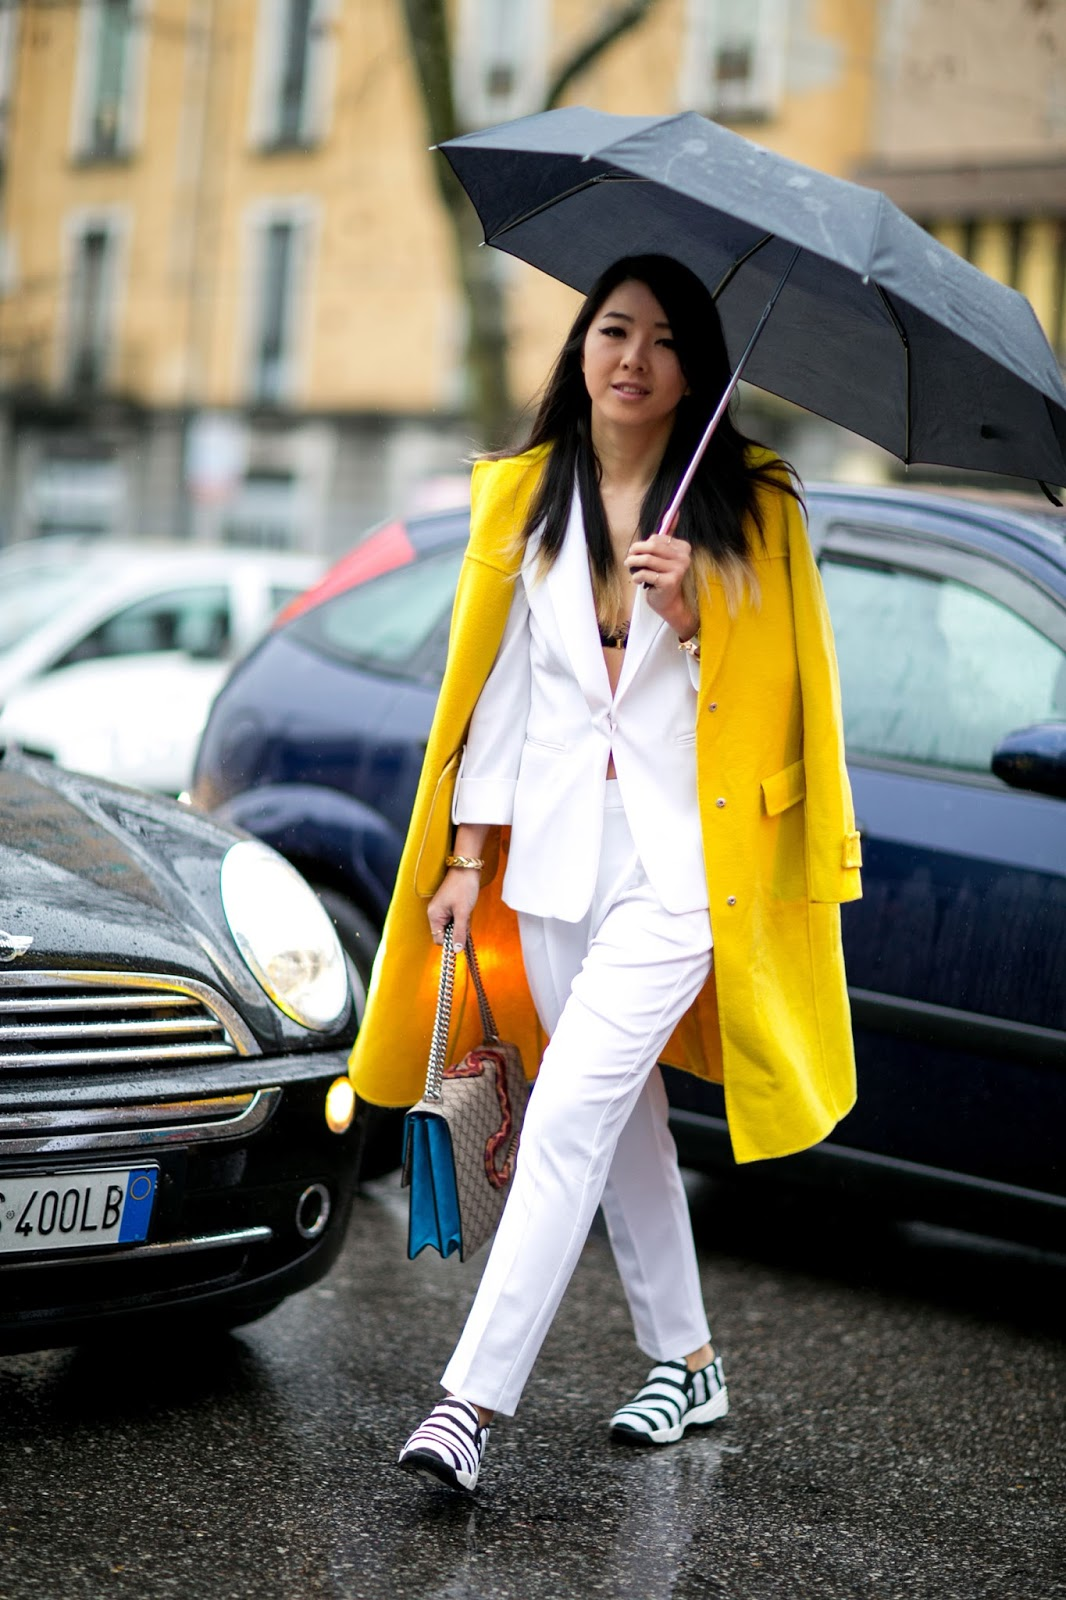 Yuwei Zhangzou's Fashion Week Street Style